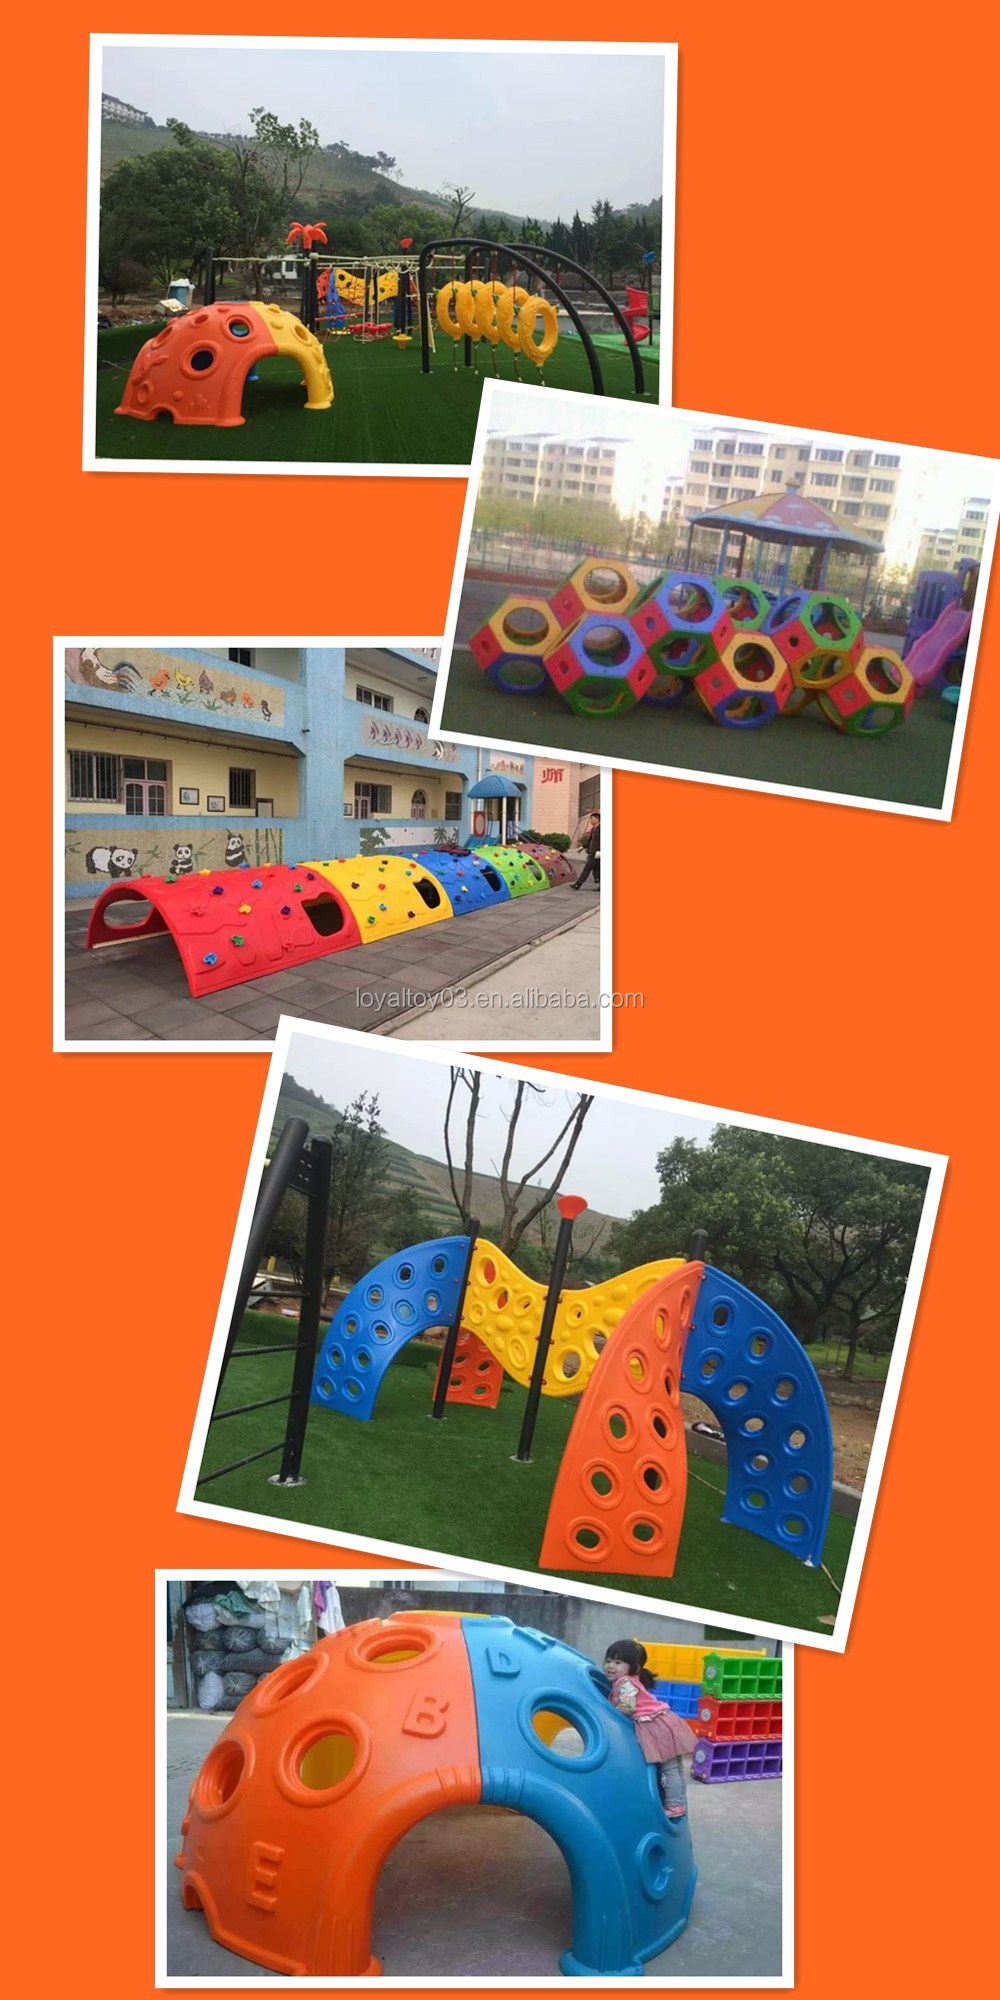 2016 NEWEST PLASTIC PLAY GAMES,PLAY SLIDES,CLIMB SLIDE with best discount